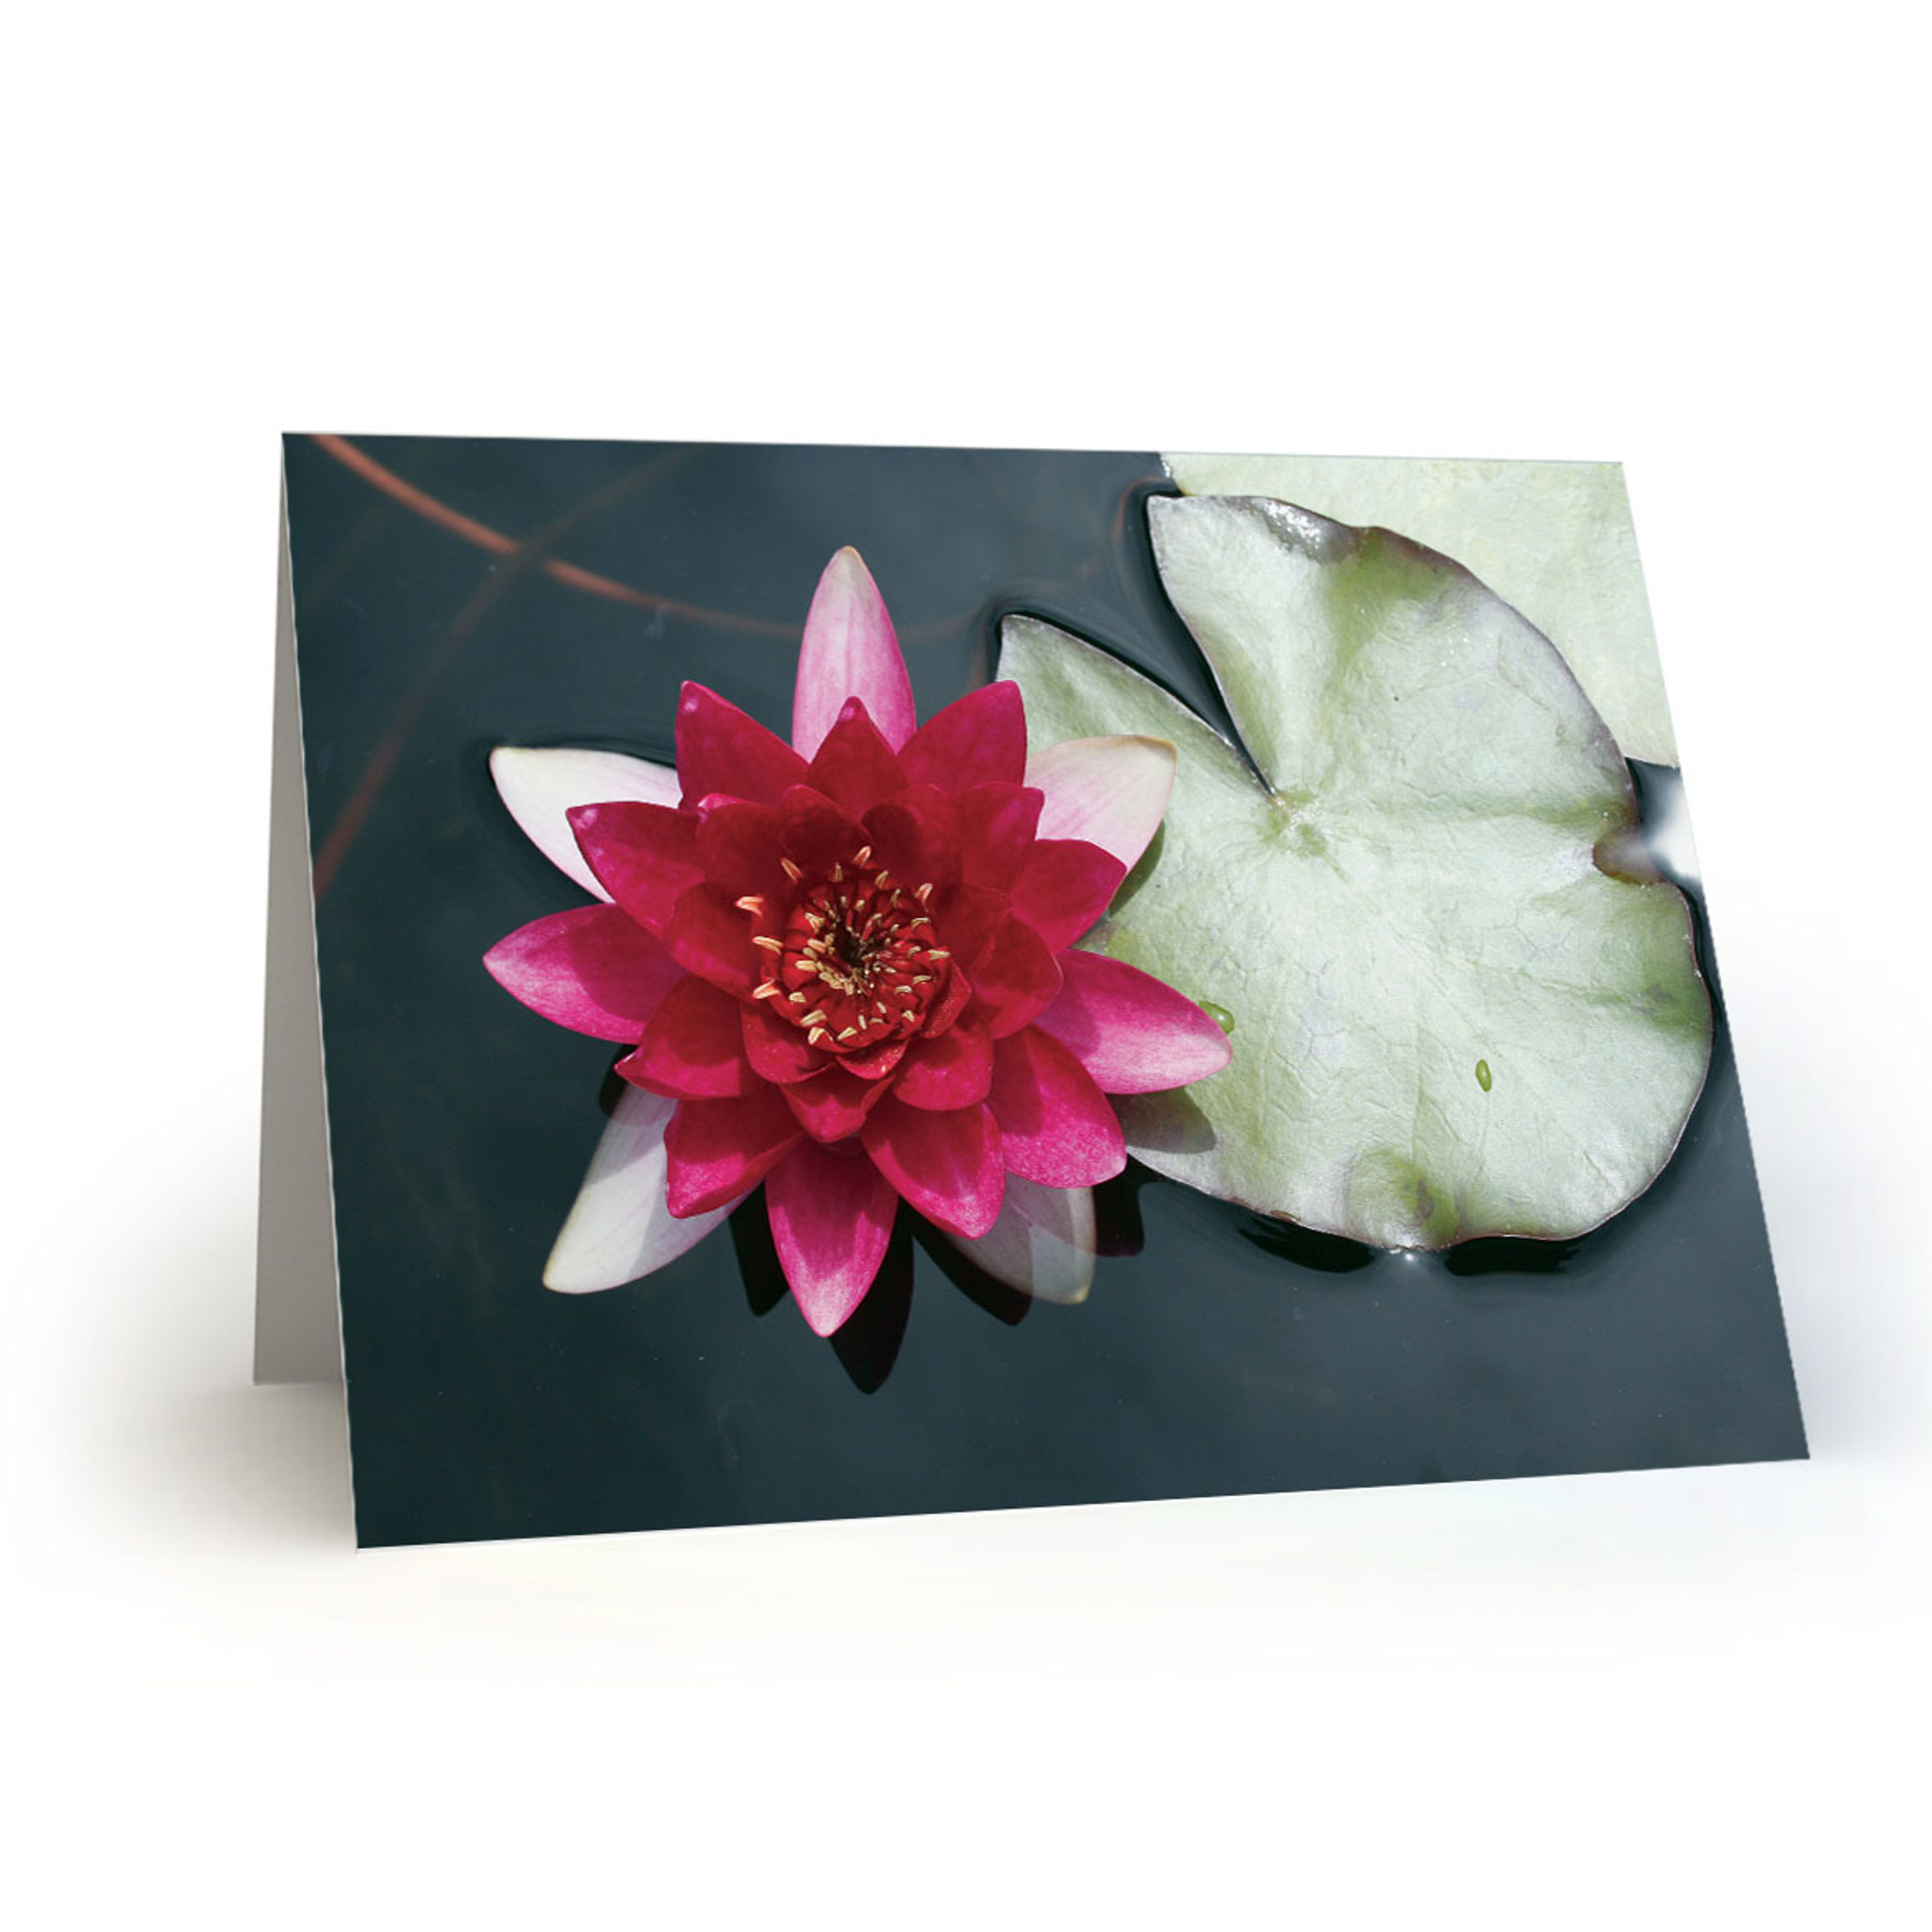 Pink water lily with lily pad cc100 givewrite pink water lily with lily pad cc100 izmirmasajfo